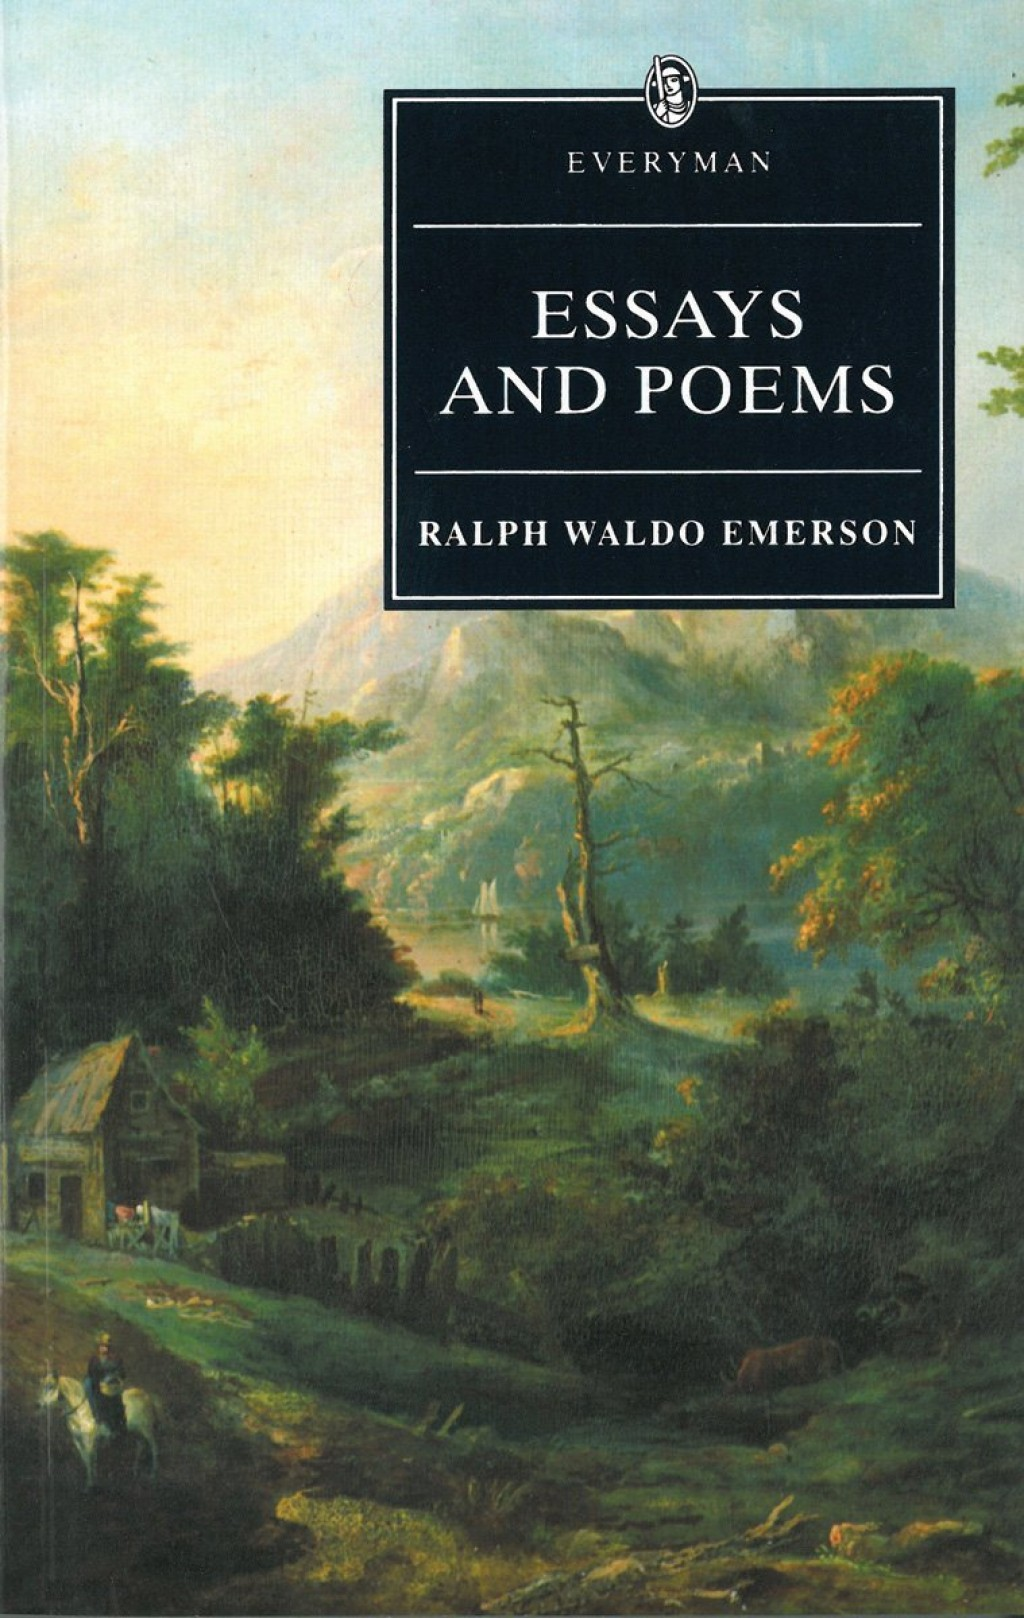 005 717qrf2ql9l Ralph Waldo Emerson Essays Essay Unusual Nature And Selected By Pdf Download First Second Series Large